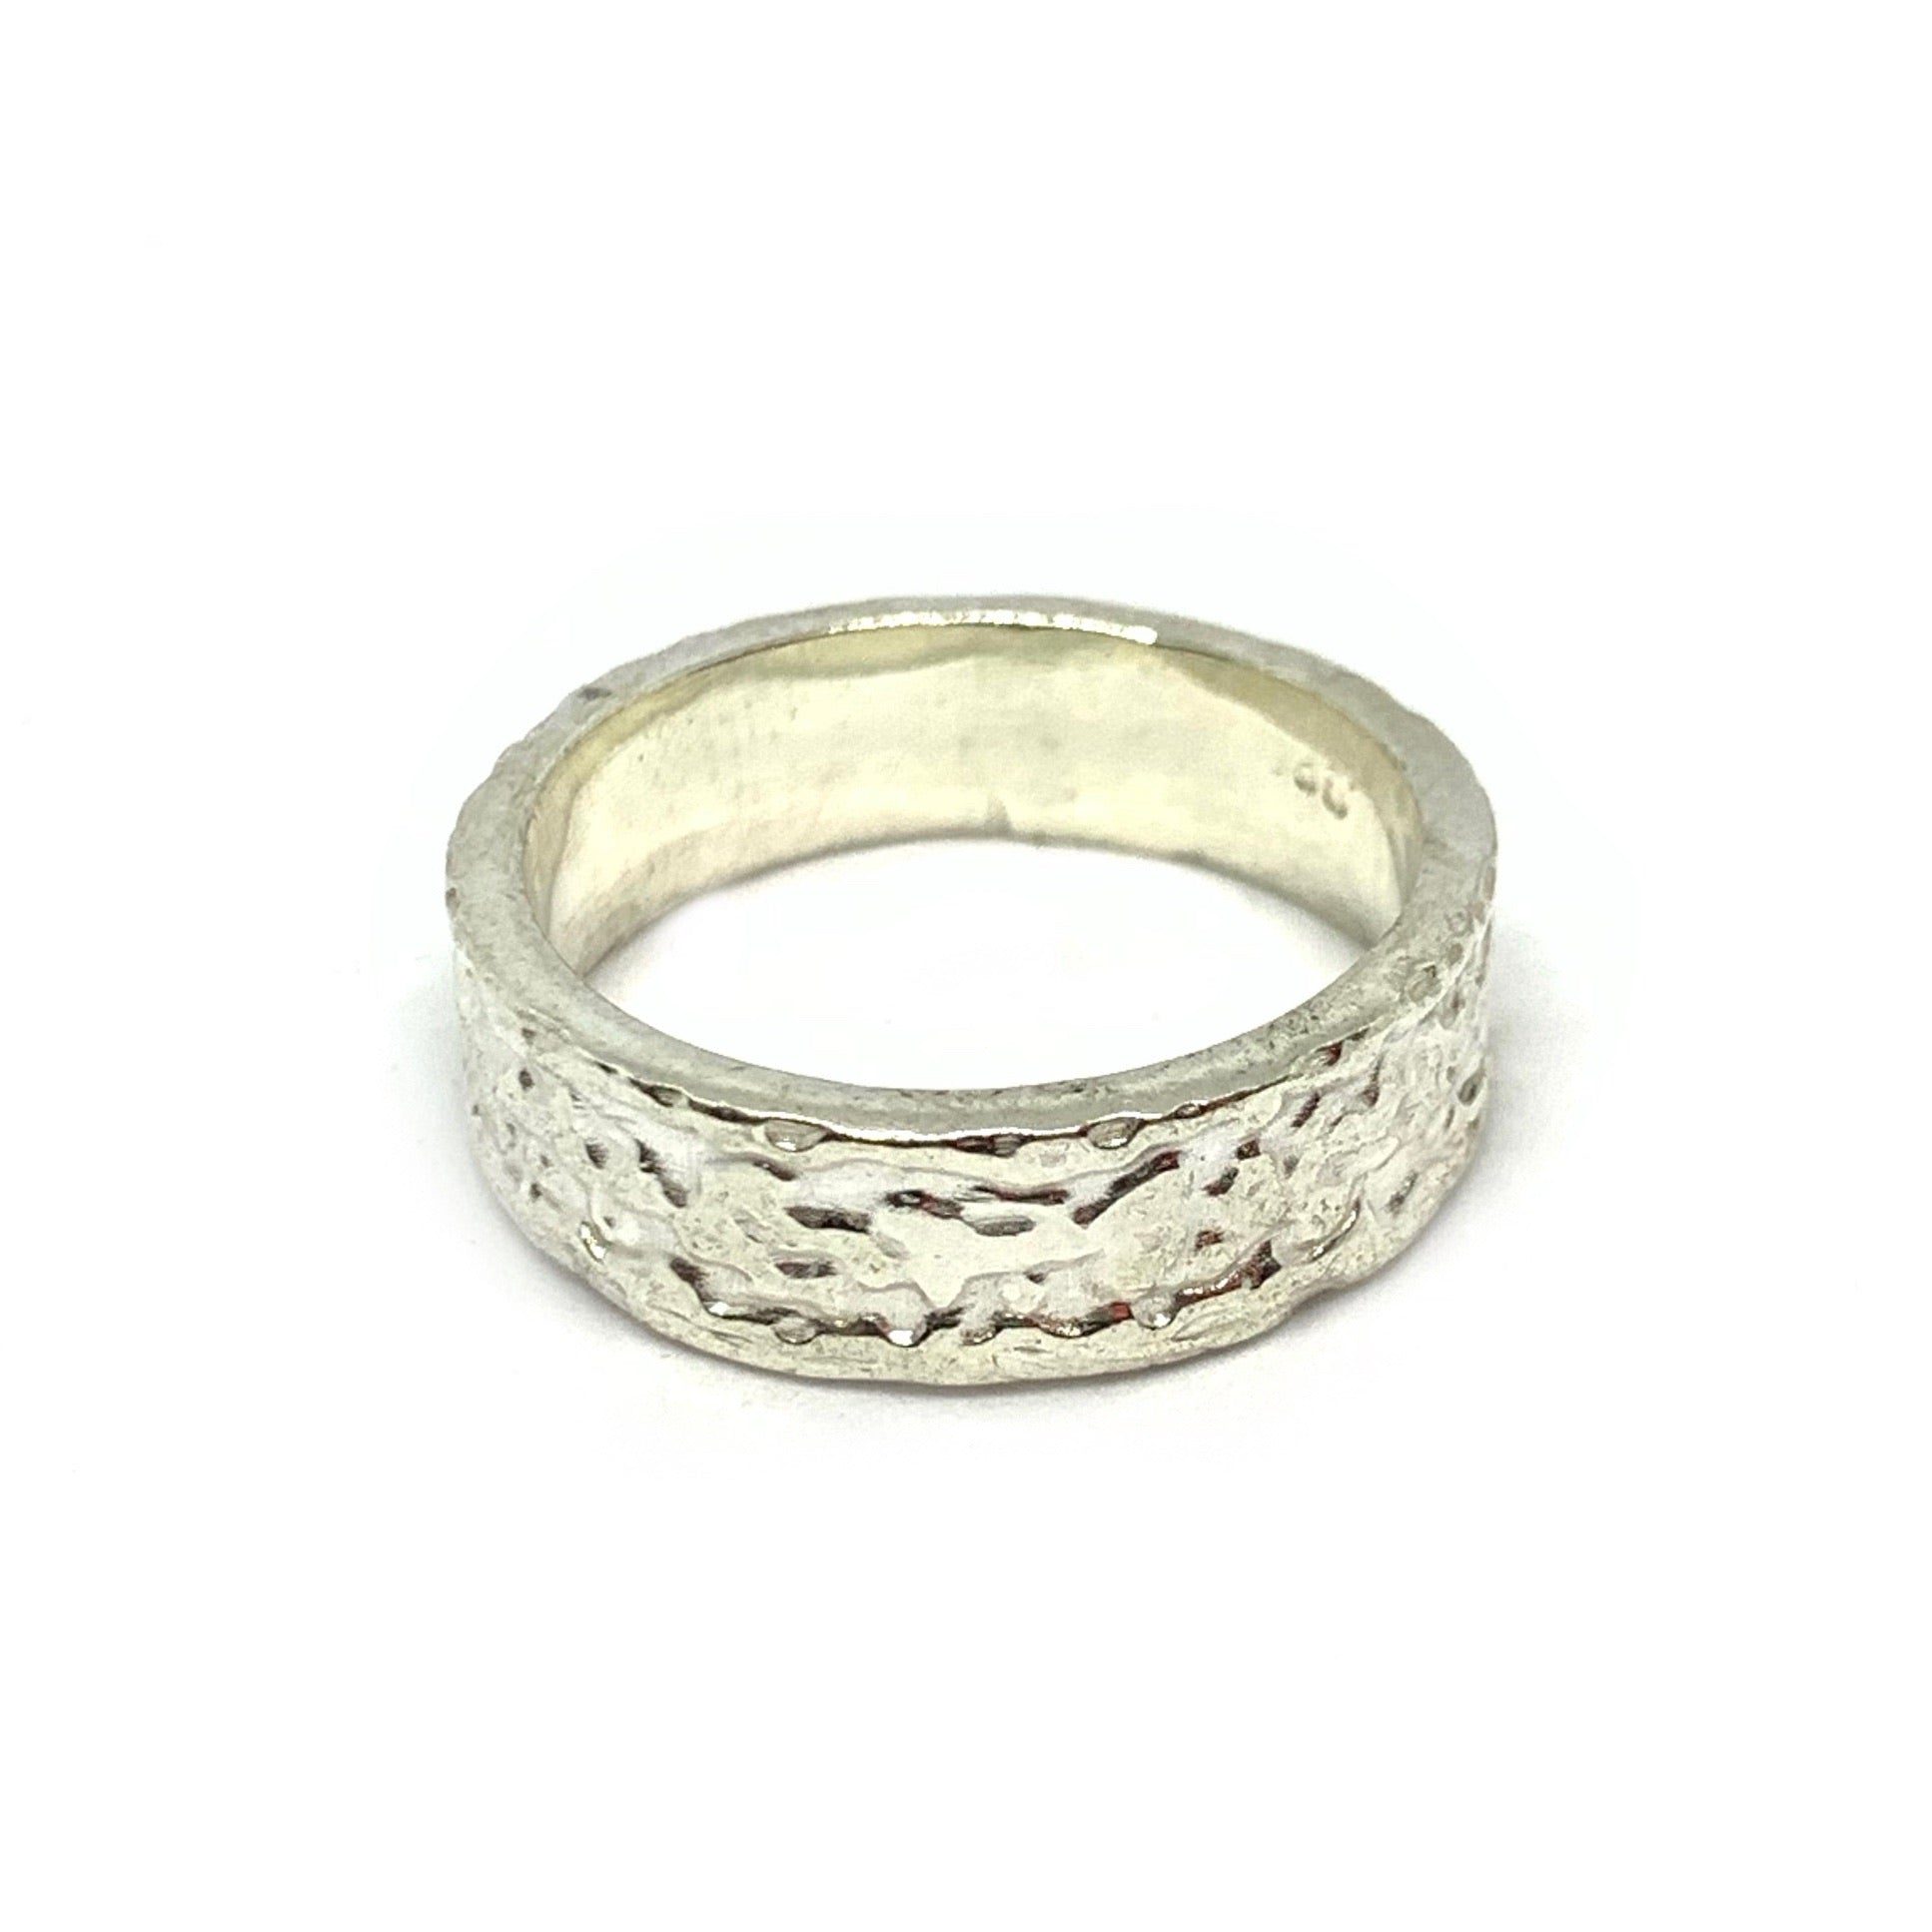 STERLING SILVER RAINFALL RING